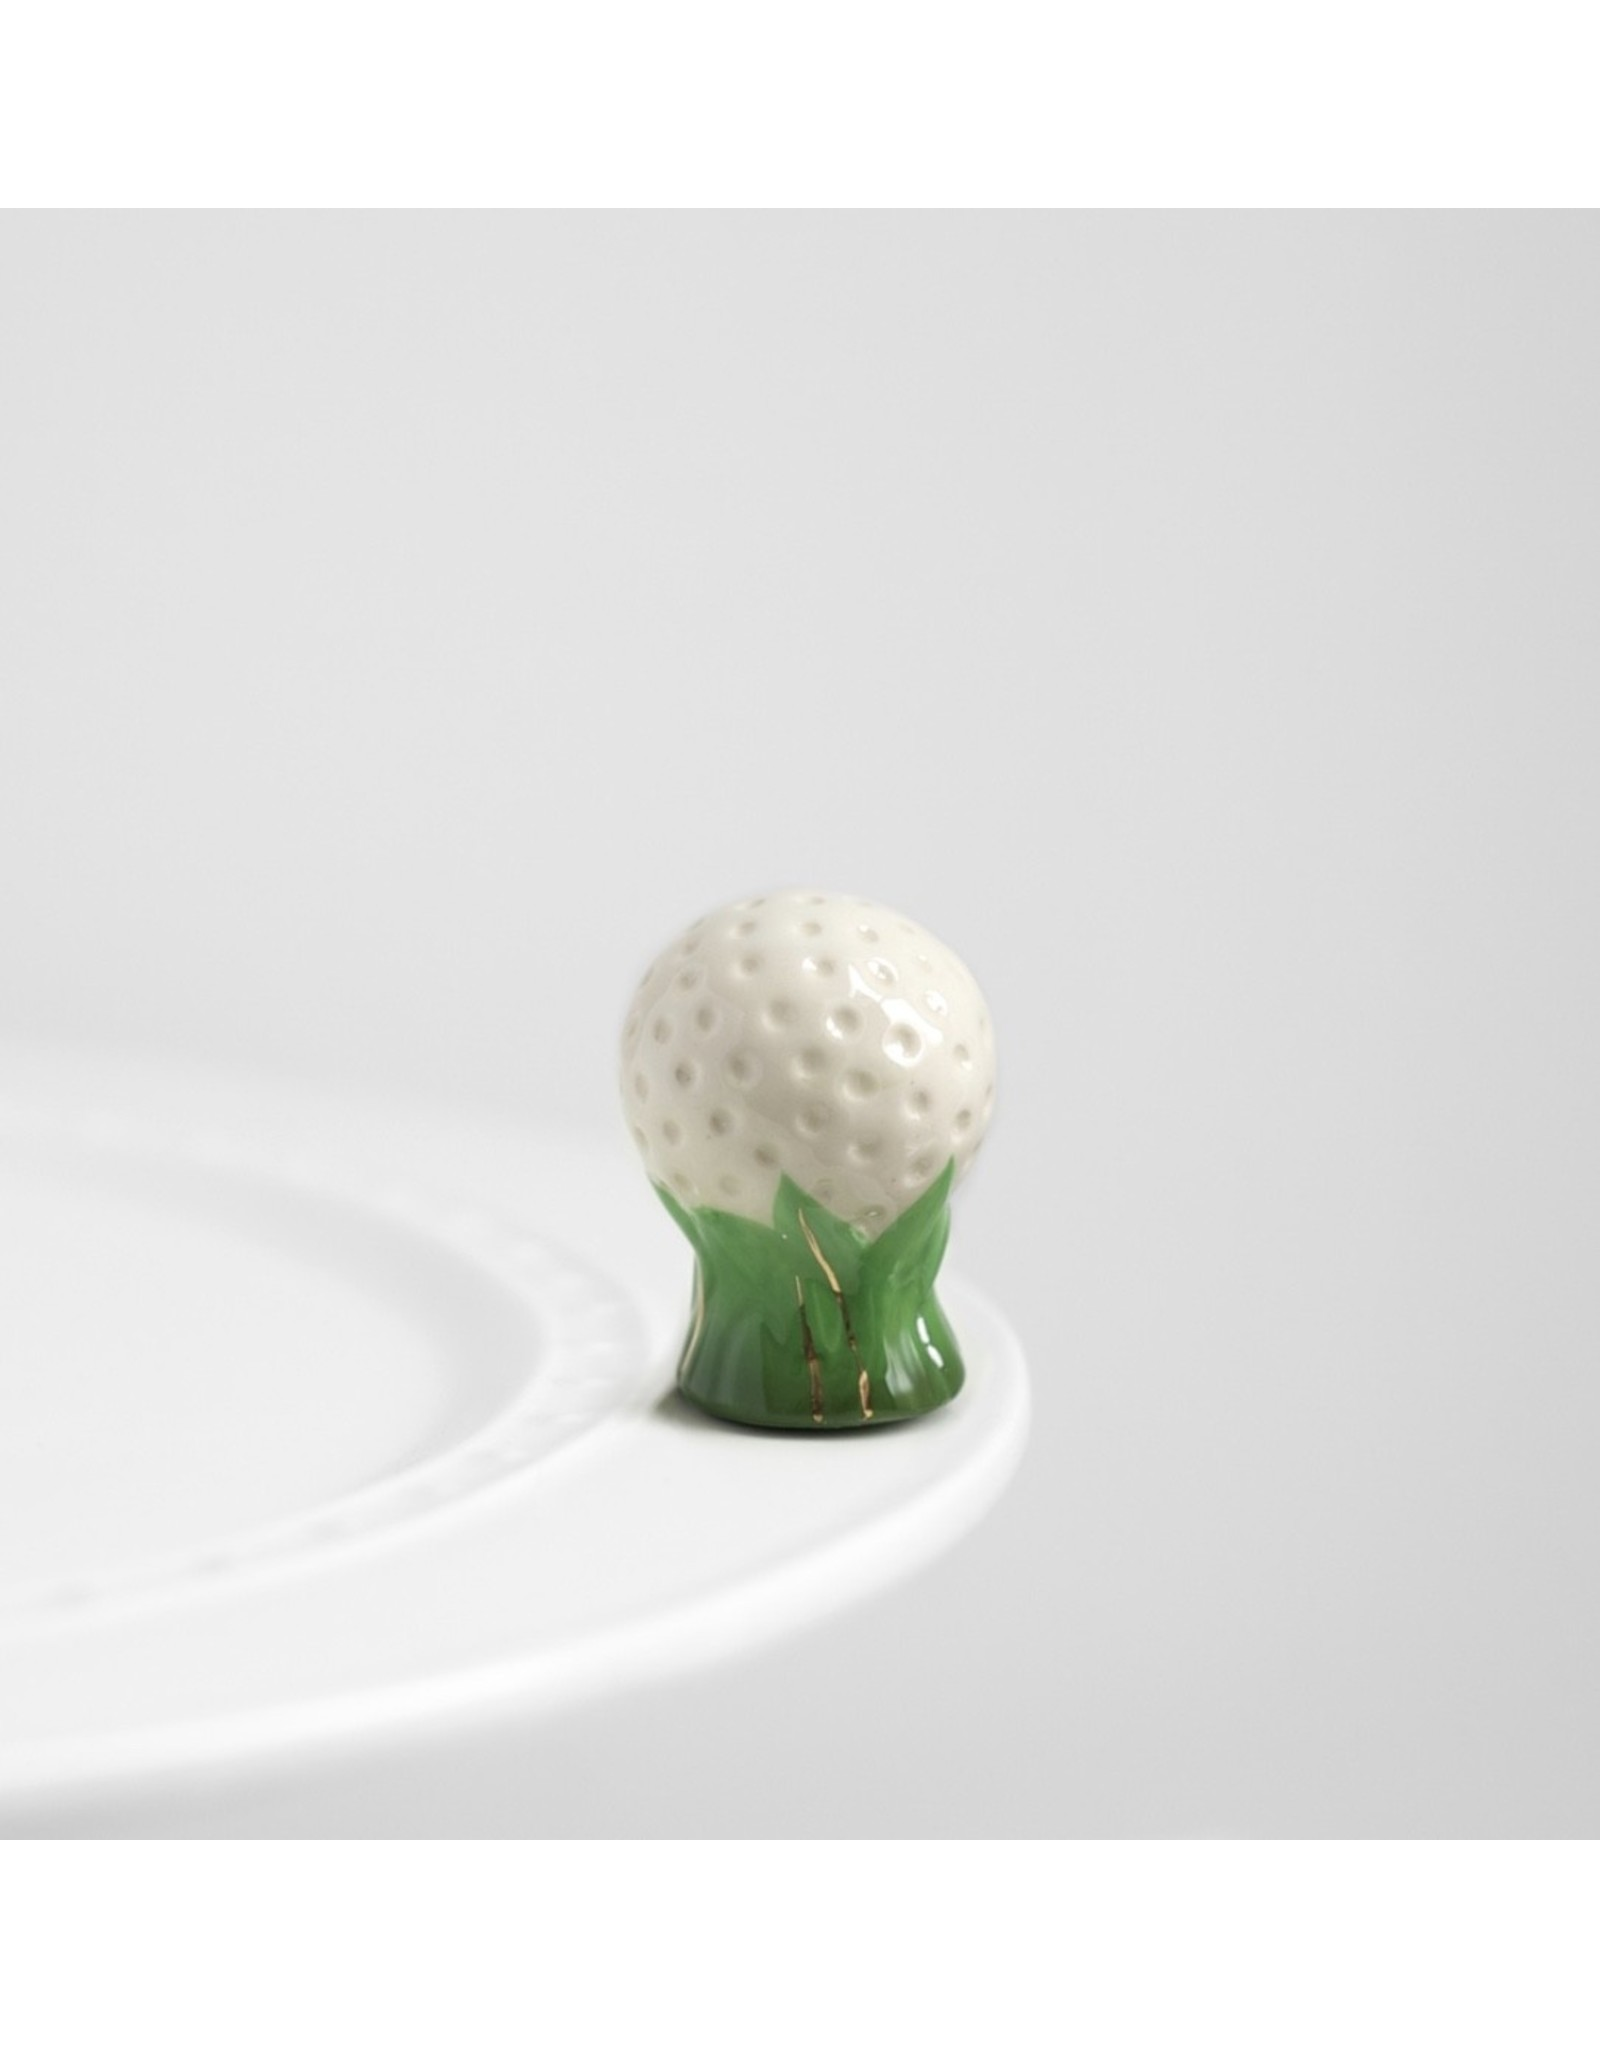 Nora Fleming 19th HOLE Mini (Golf Ball)